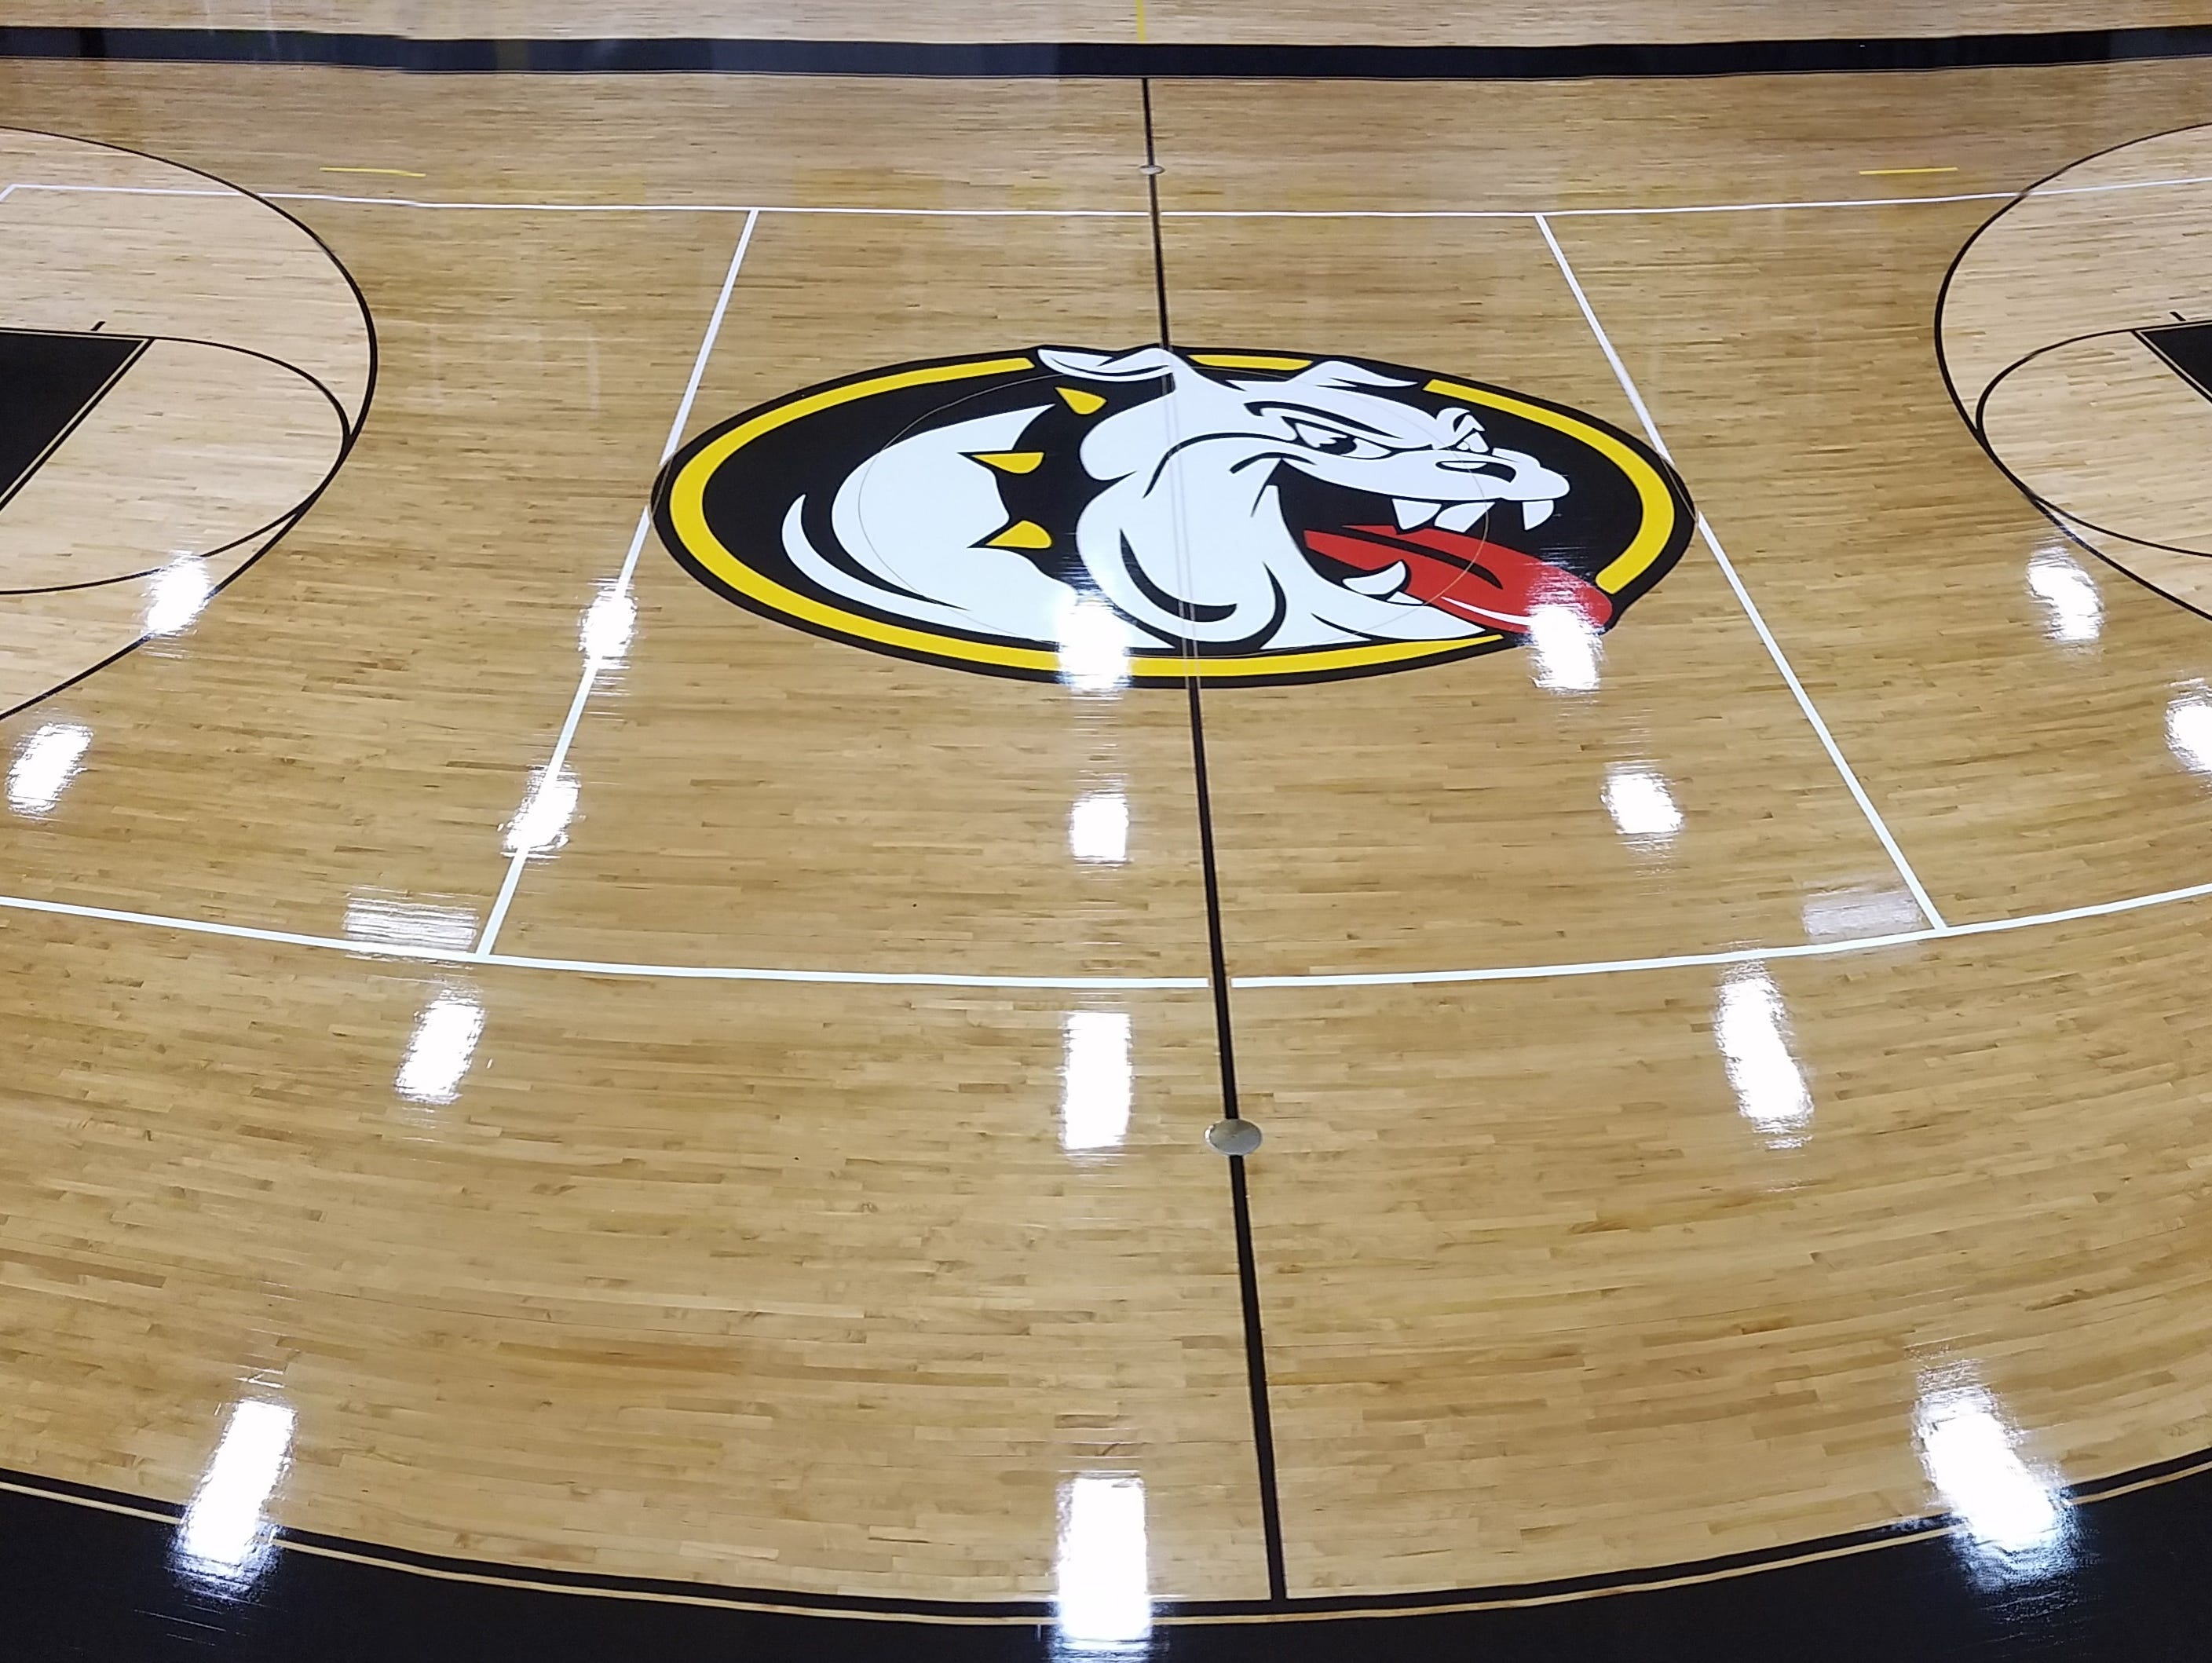 http://www.citizen-times.com/story/sports/high-school/hshuddle/2016/08/03/andrews-gym-floor-gets-big-makeover/87992842/